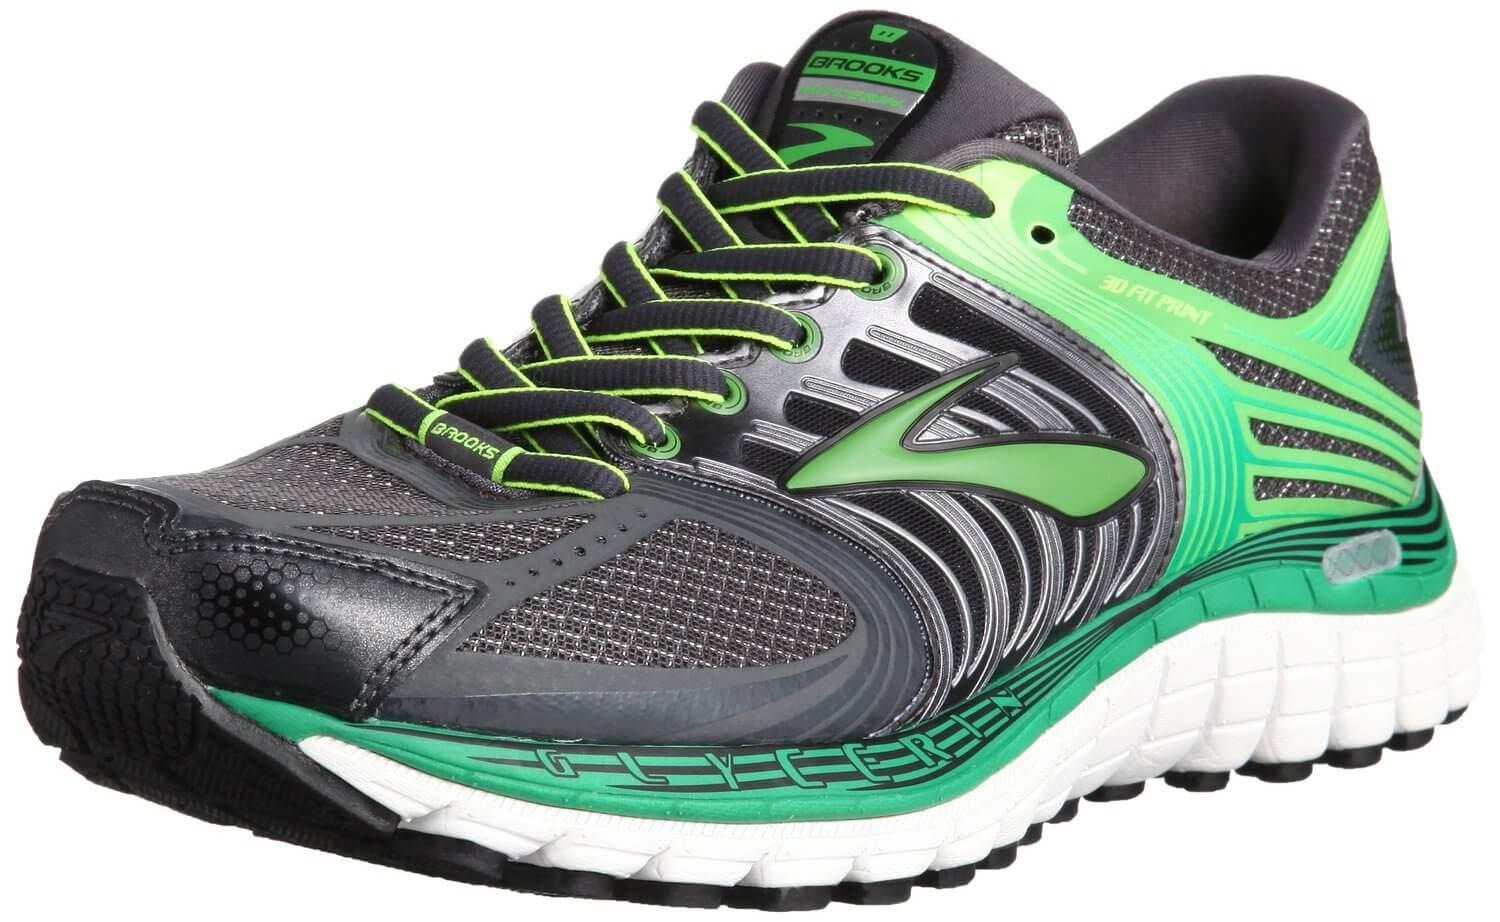 dcde2698704 Brooks Glycerin 11 Reviewed - To Buy or Not in Apr 2019